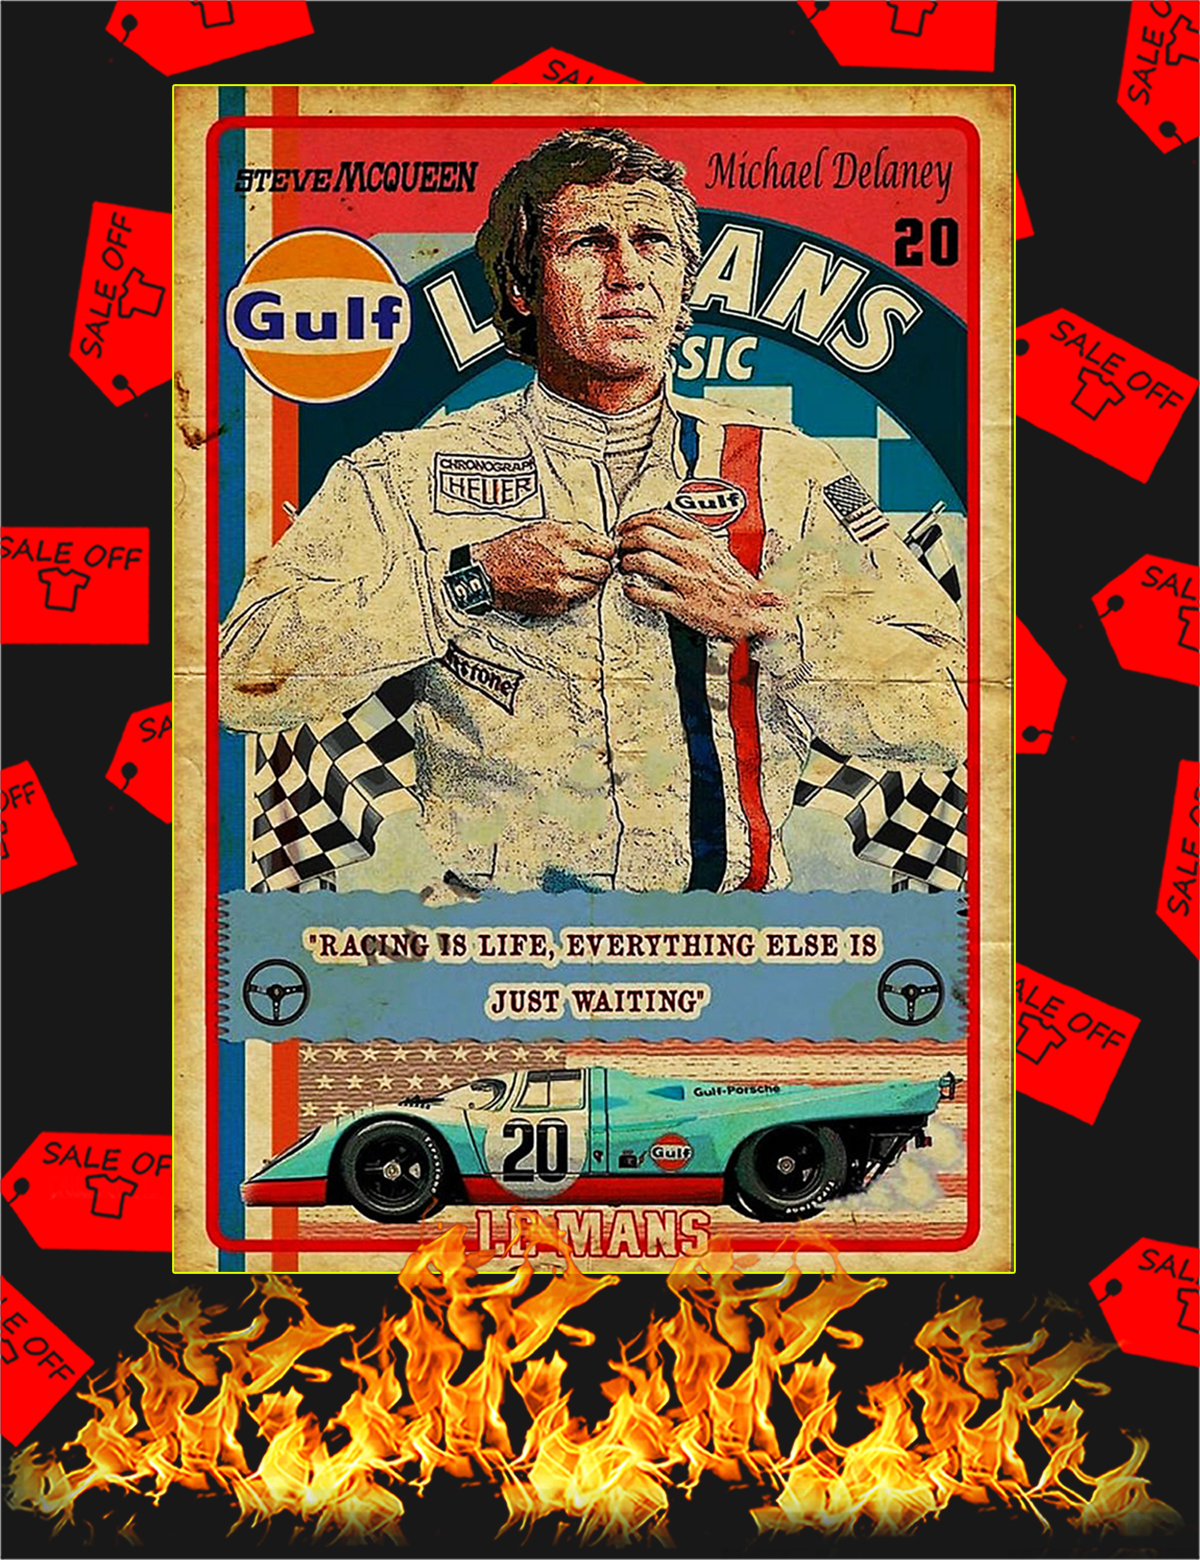 Racing is life everything else is just waiting Steve Mcqueen Poster - A1